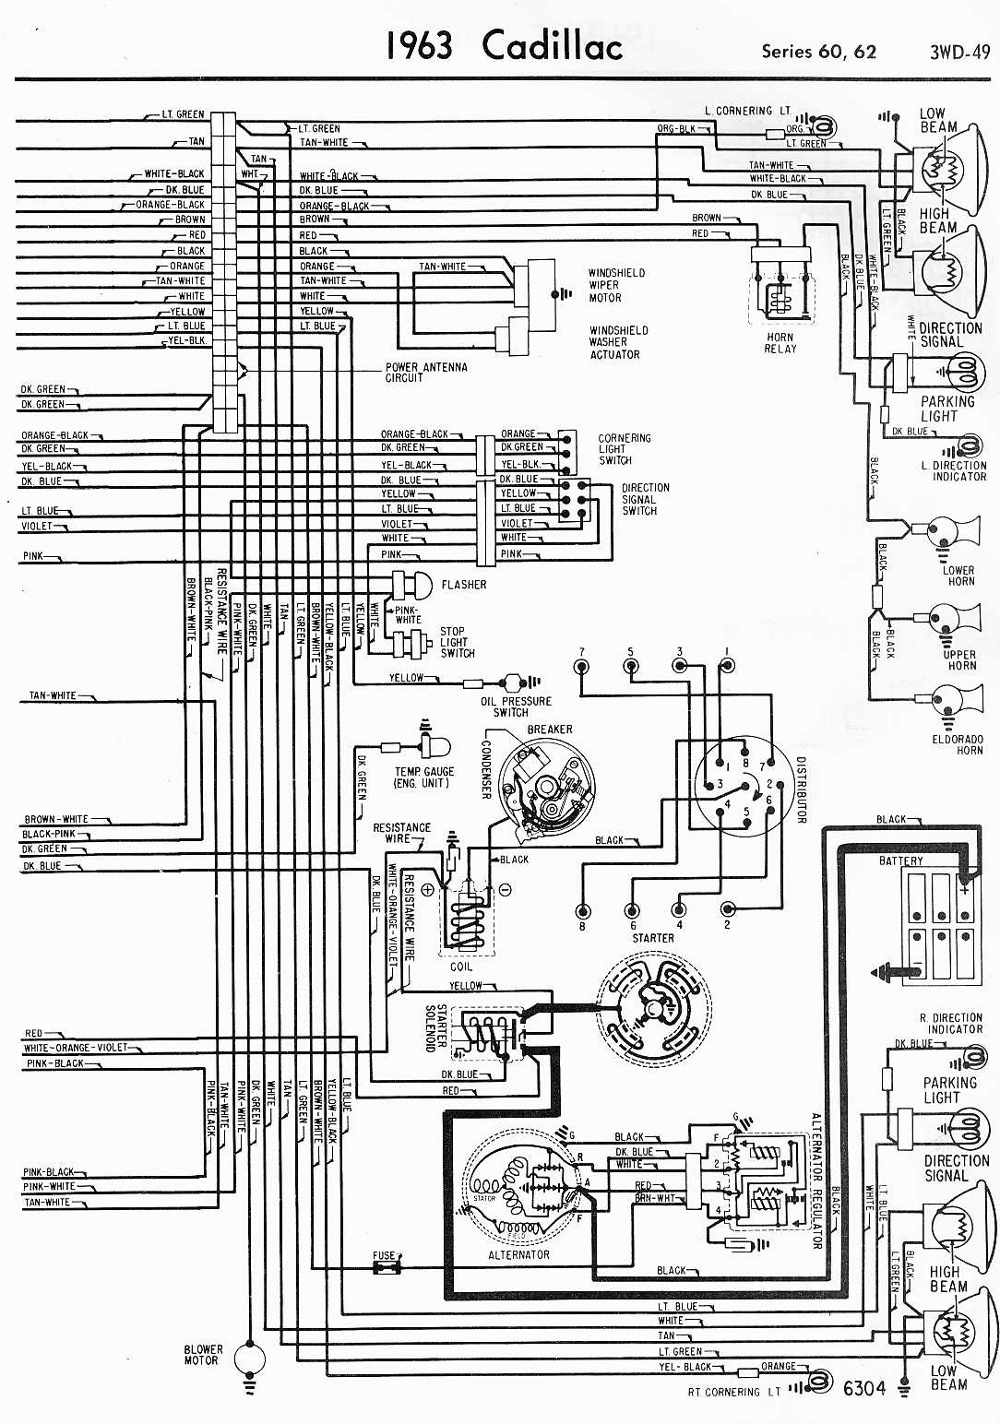 1964 Cadillac Wiring Harness Diagram Schematics Wire Schematic U2022